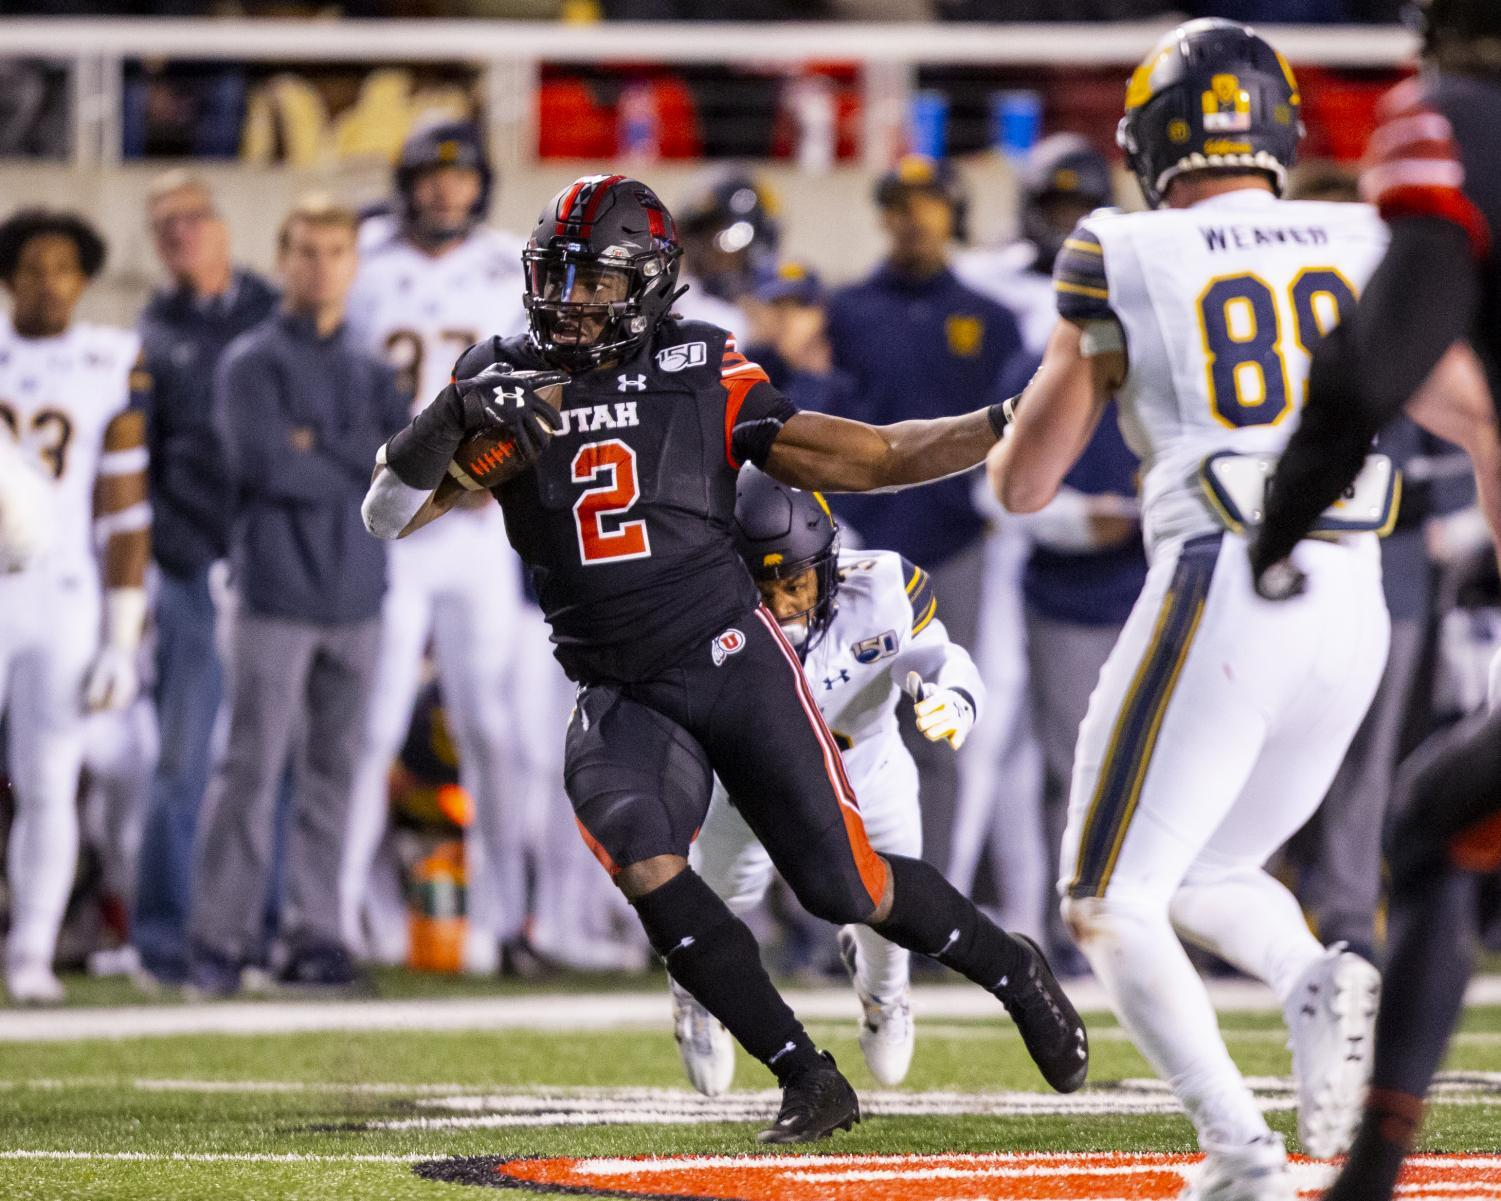 University of Utah senior running back Zack Moss (2) runs with the ball after taking a handoff from University of Utah senior quarterback Tyler Huntley (1) in an NCAA Football game vs. University of California at Rice-Eccles Stadium in Salt Lake City, UT on Saturday October 26, 2019.(Photo by Curtis Lin | Daily Utah Chronicle)